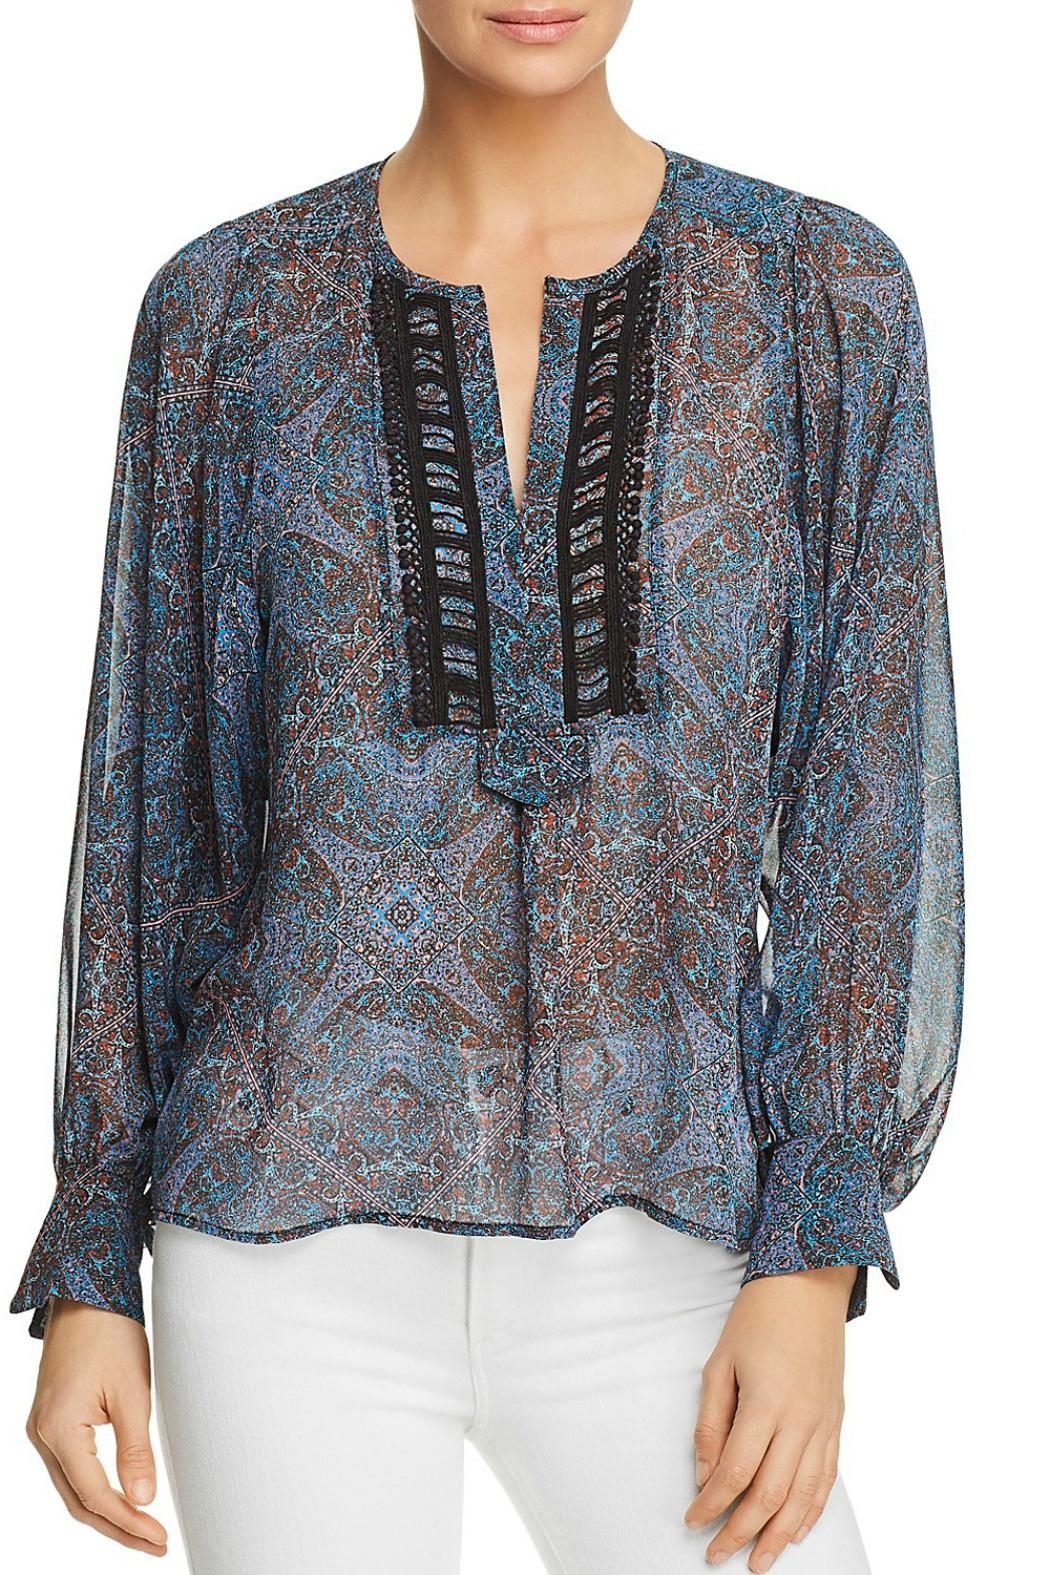 Ella Moss Tapestry Print Top - Front Cropped Image